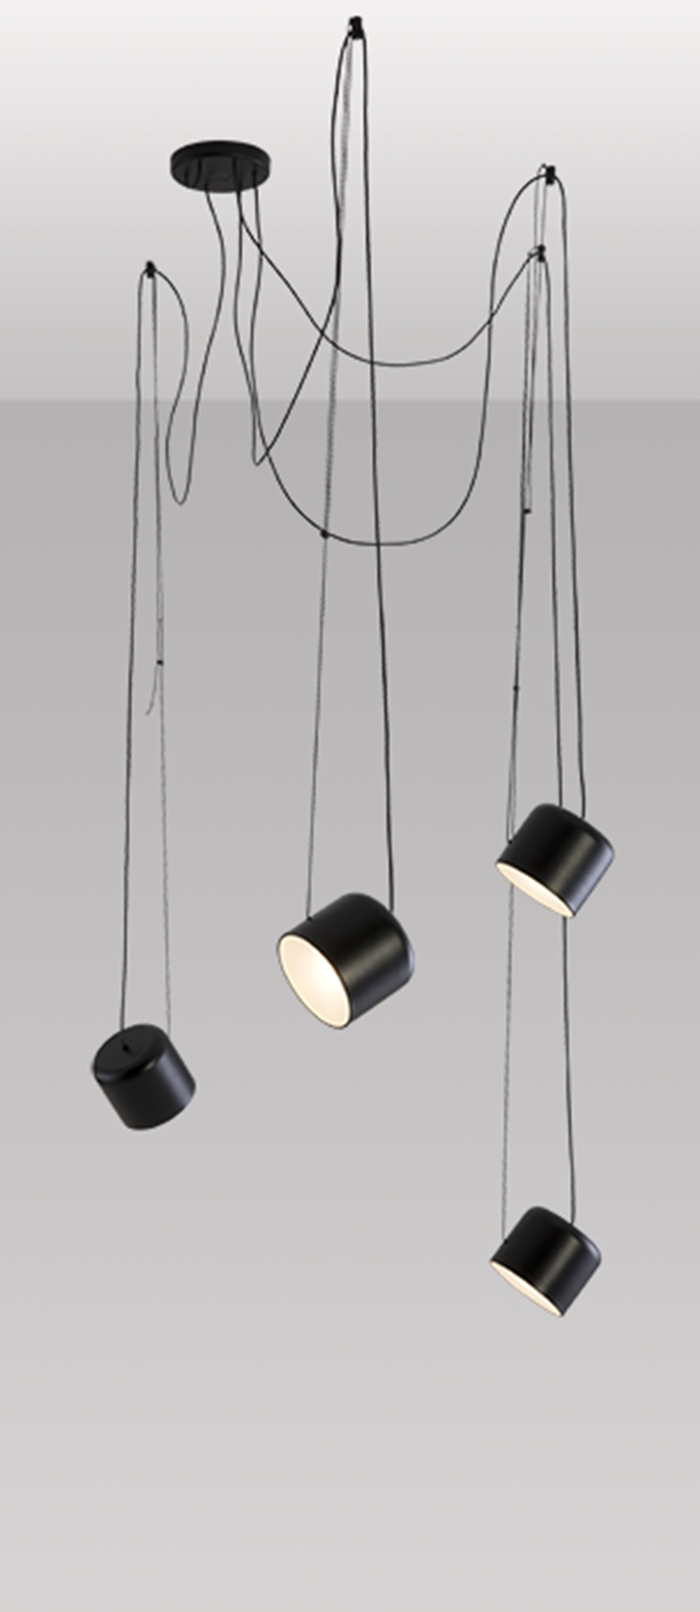 Light: Modern Pendant Light Australia regarding Contemporary Pendant Lights Australia (Image 11 of 15)